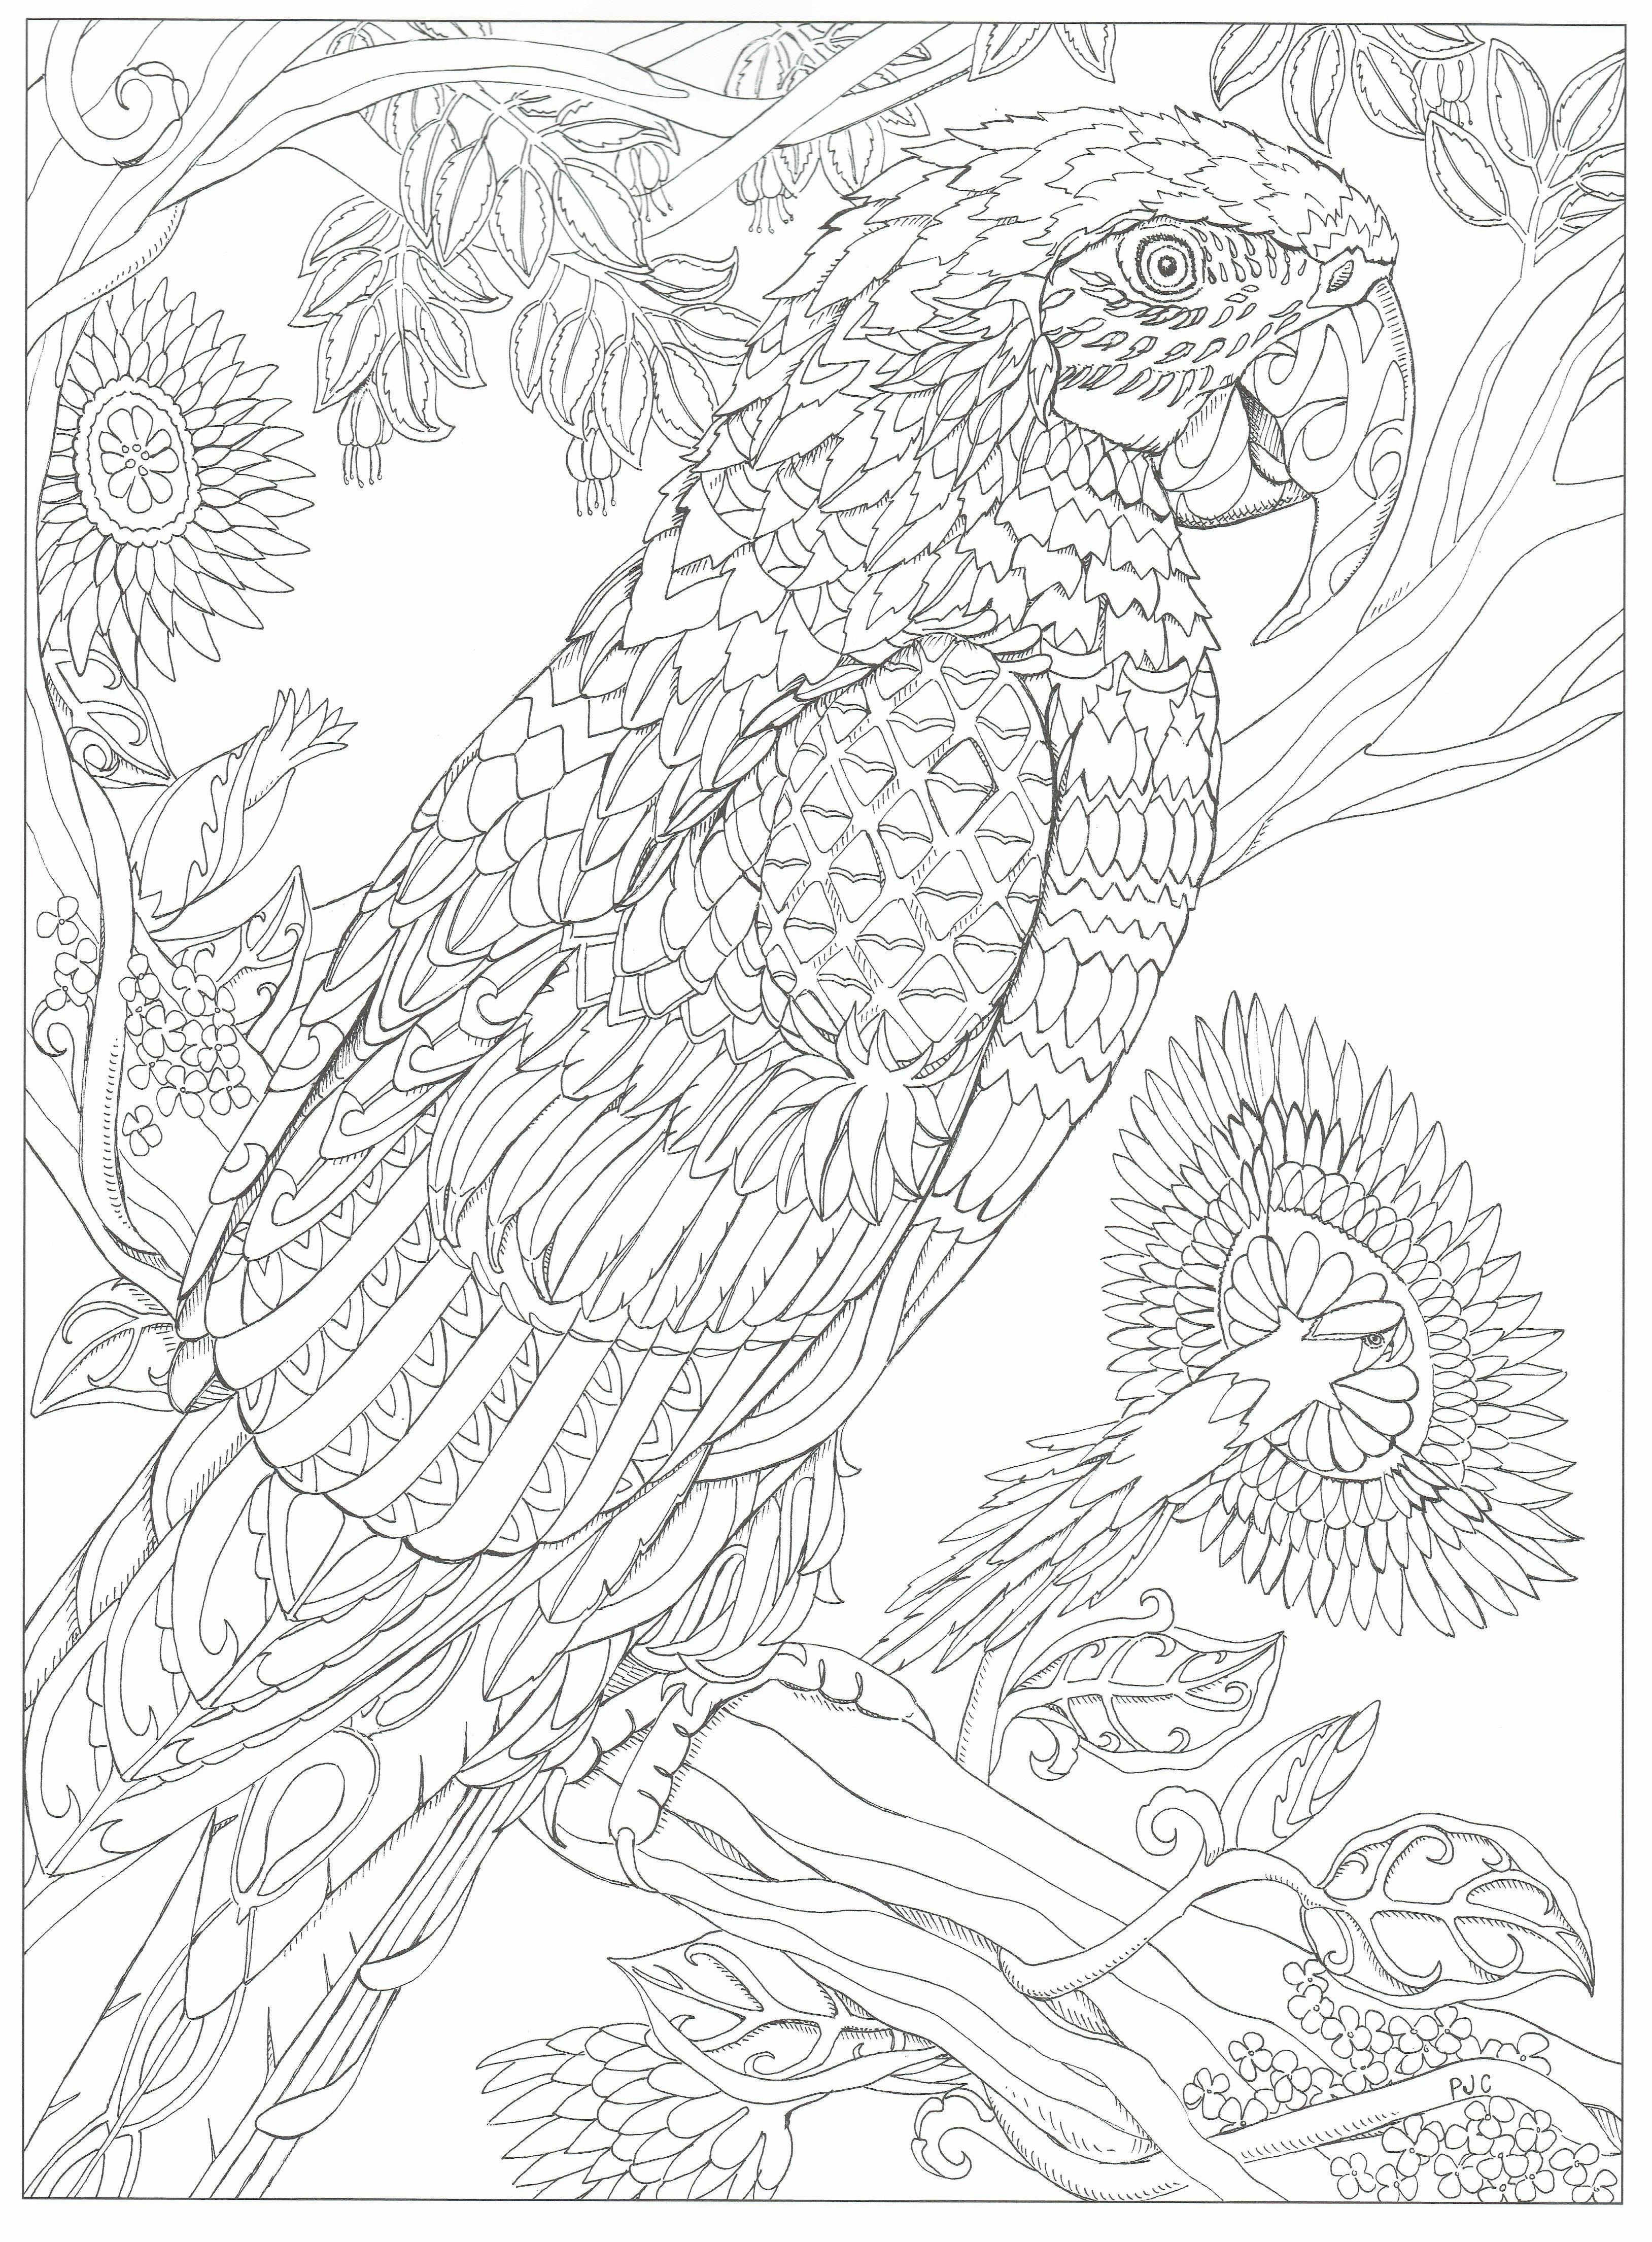 Pin On Adult Coloring Pages To Save And Print